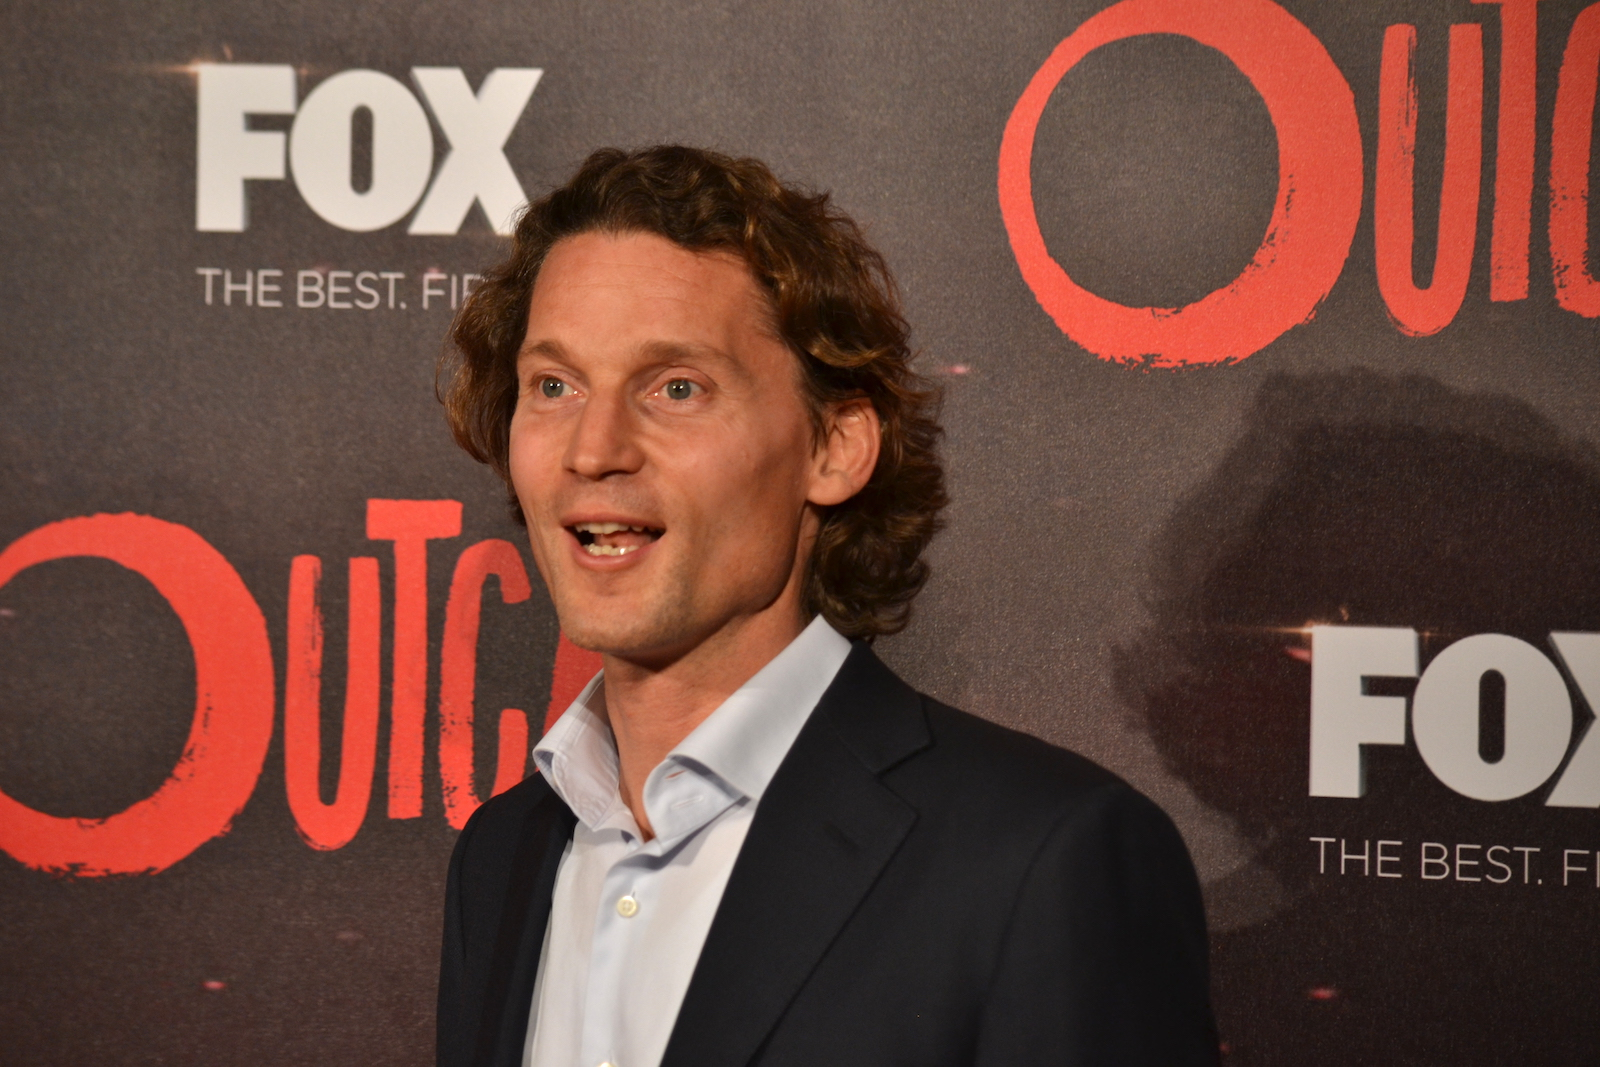 Outcast: un dirigente Fox sul red carpet della premiere europea